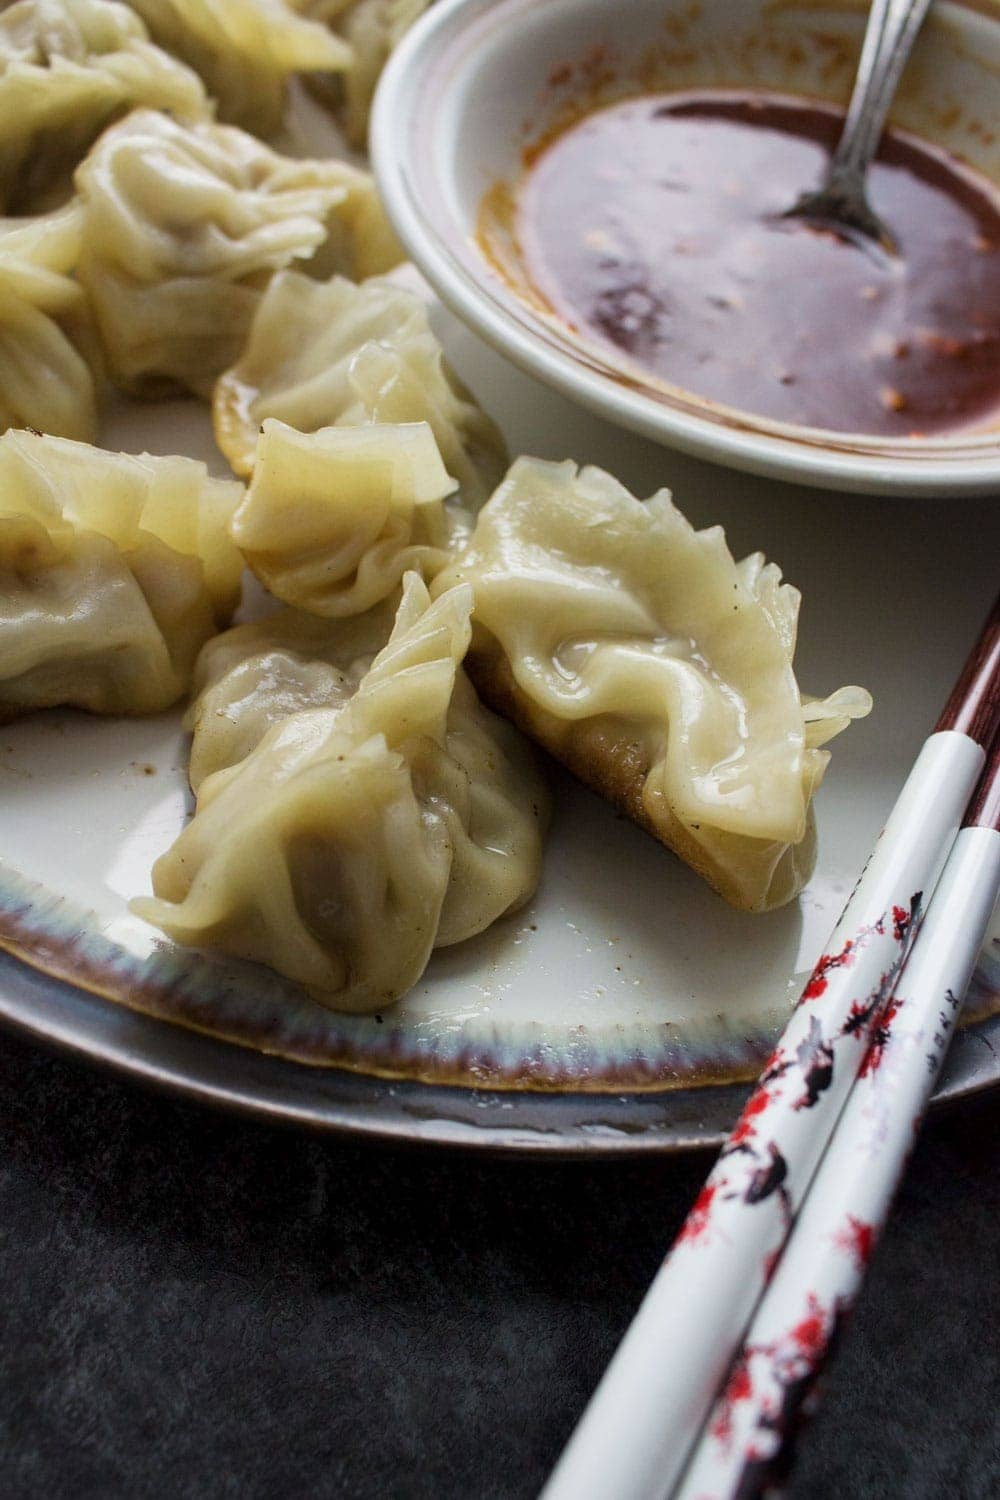 These pork potstickers with a chilli dipping sauce are filling, tasty, & easier than you think! Use premade dumpling wrappers to be ready in under an hour.